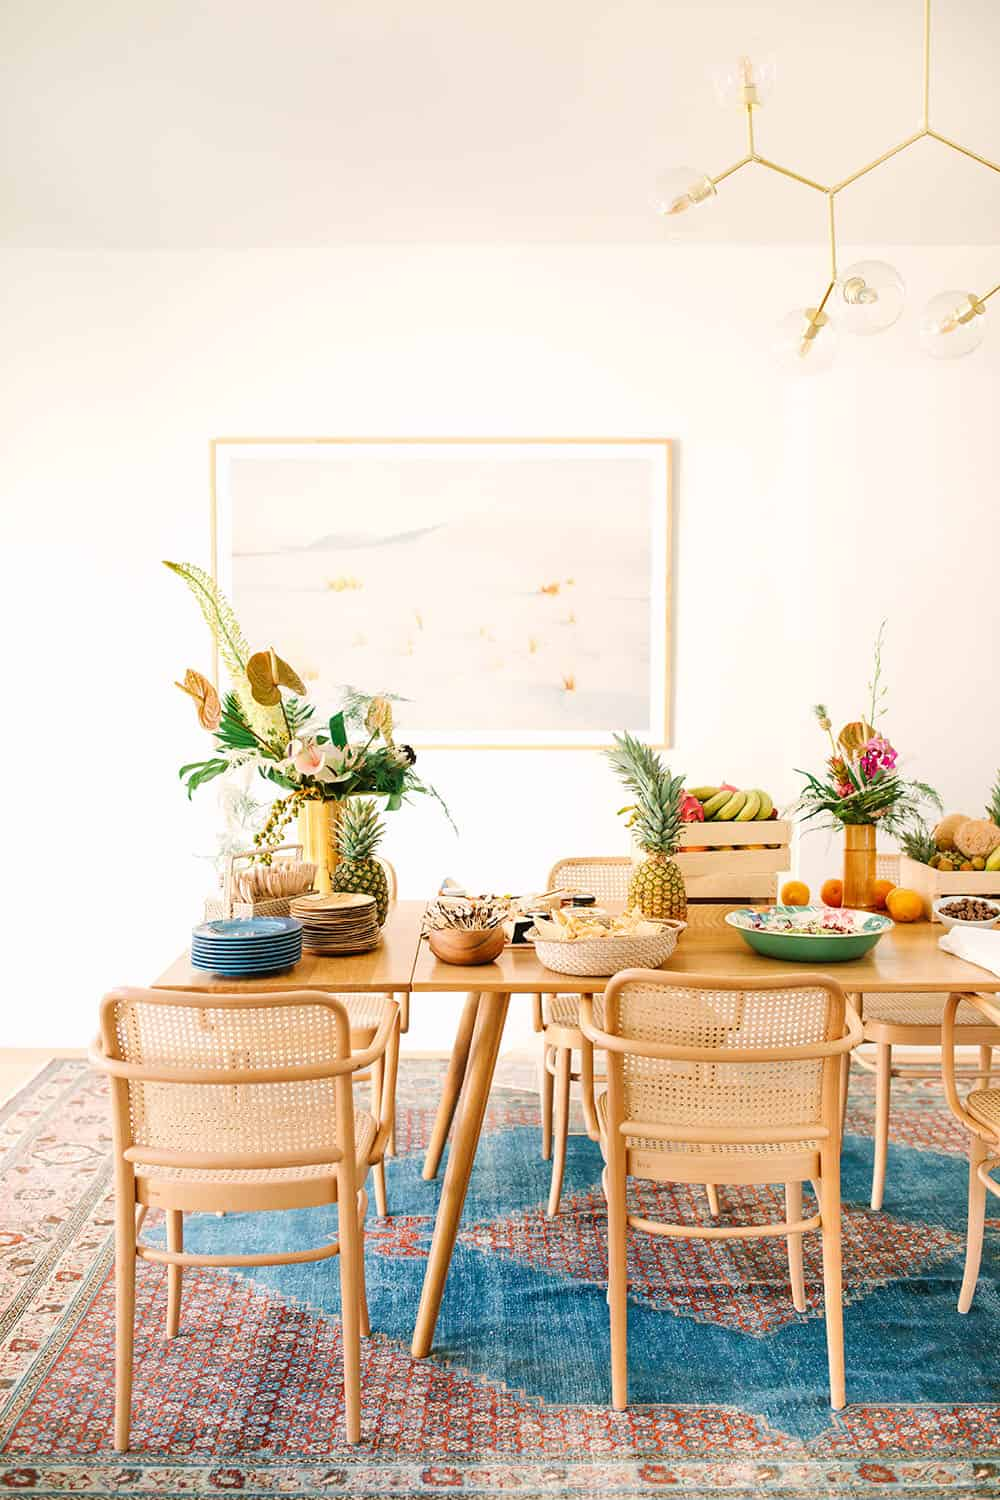 Tropical party and food in dining room.